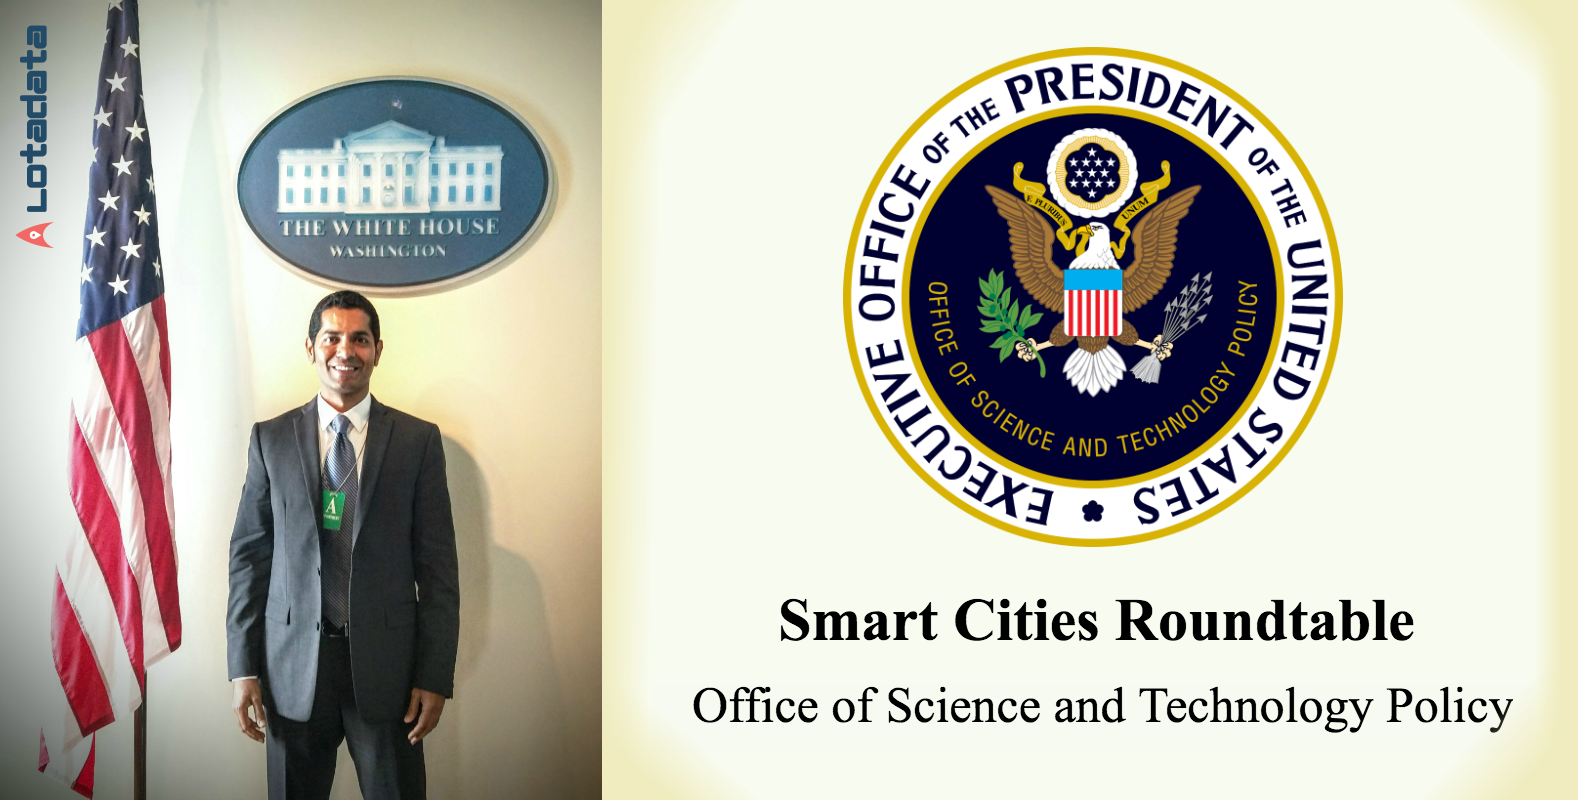 Making Cities Smarter at the White House